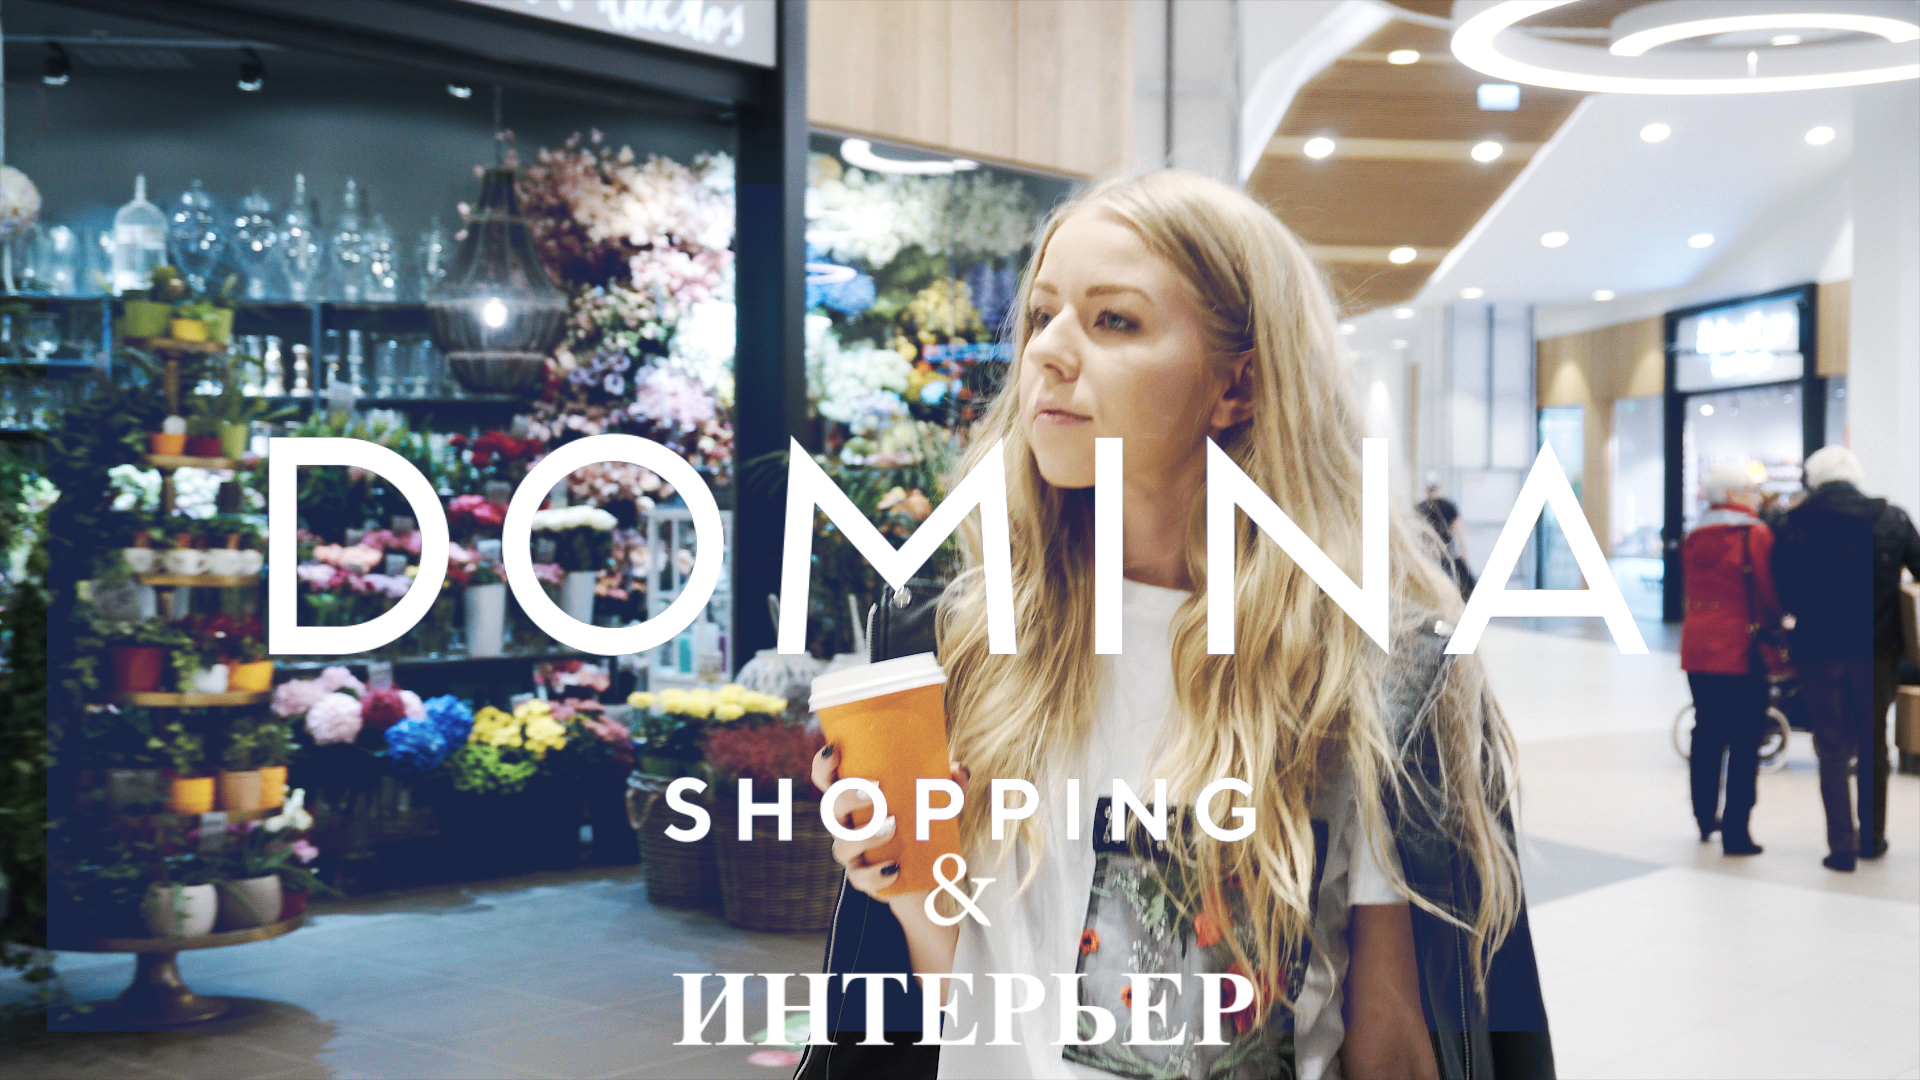 DOMINA SHOPPING & ИНТЕРЬЕР